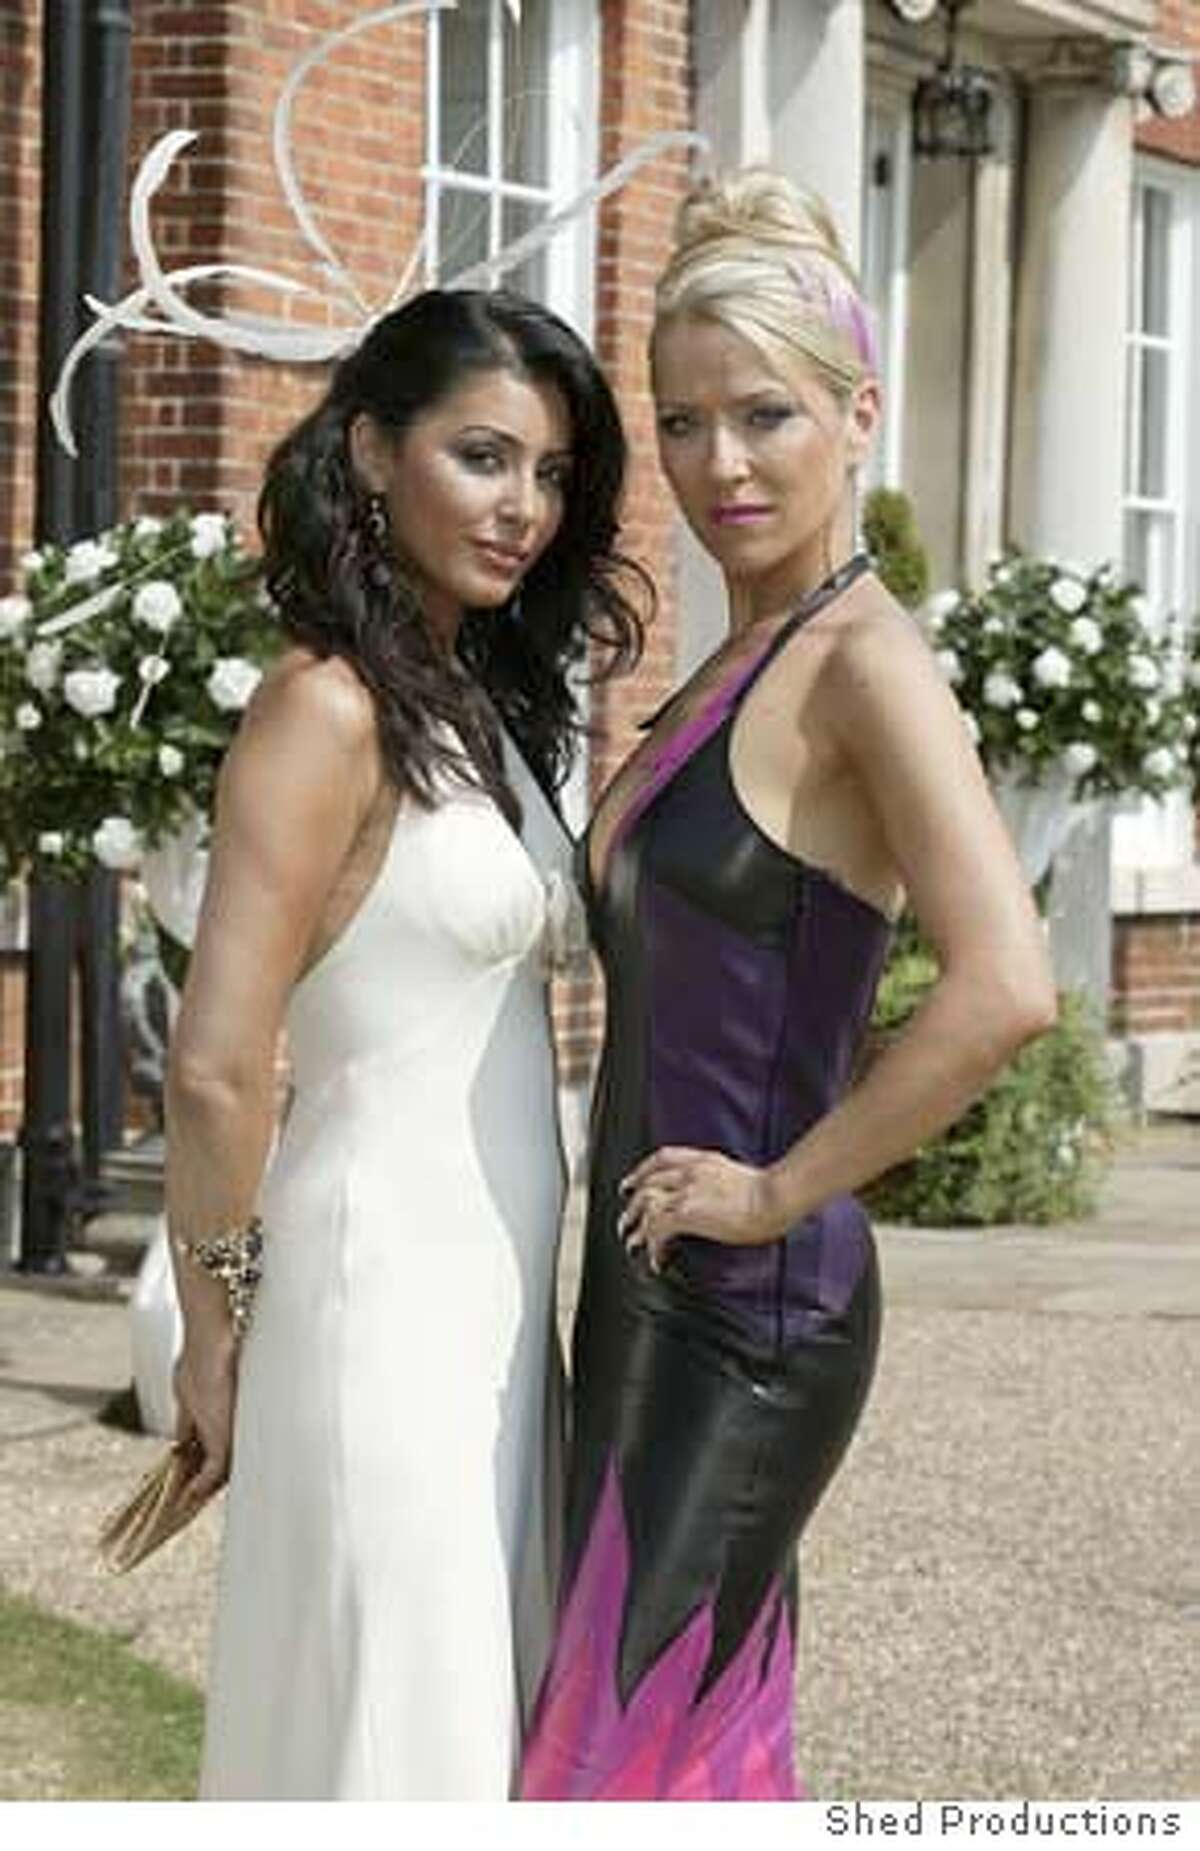 Footballers Wives 5 Amber (Laila Rouass) and Tanya (Zo� Lucker) in Footballers Wive$. Credit: Shed Productions Ran on: 02-17-2006 Laila Rouass and Zoe Lucker of Footballers Wives. Ran on: 12-27-2006 Love Monkey, starring (from left) Tom Cavanagh, Larenz Tate, Jason Priestley and Christopher Wiehl. CBS gave up on the series.